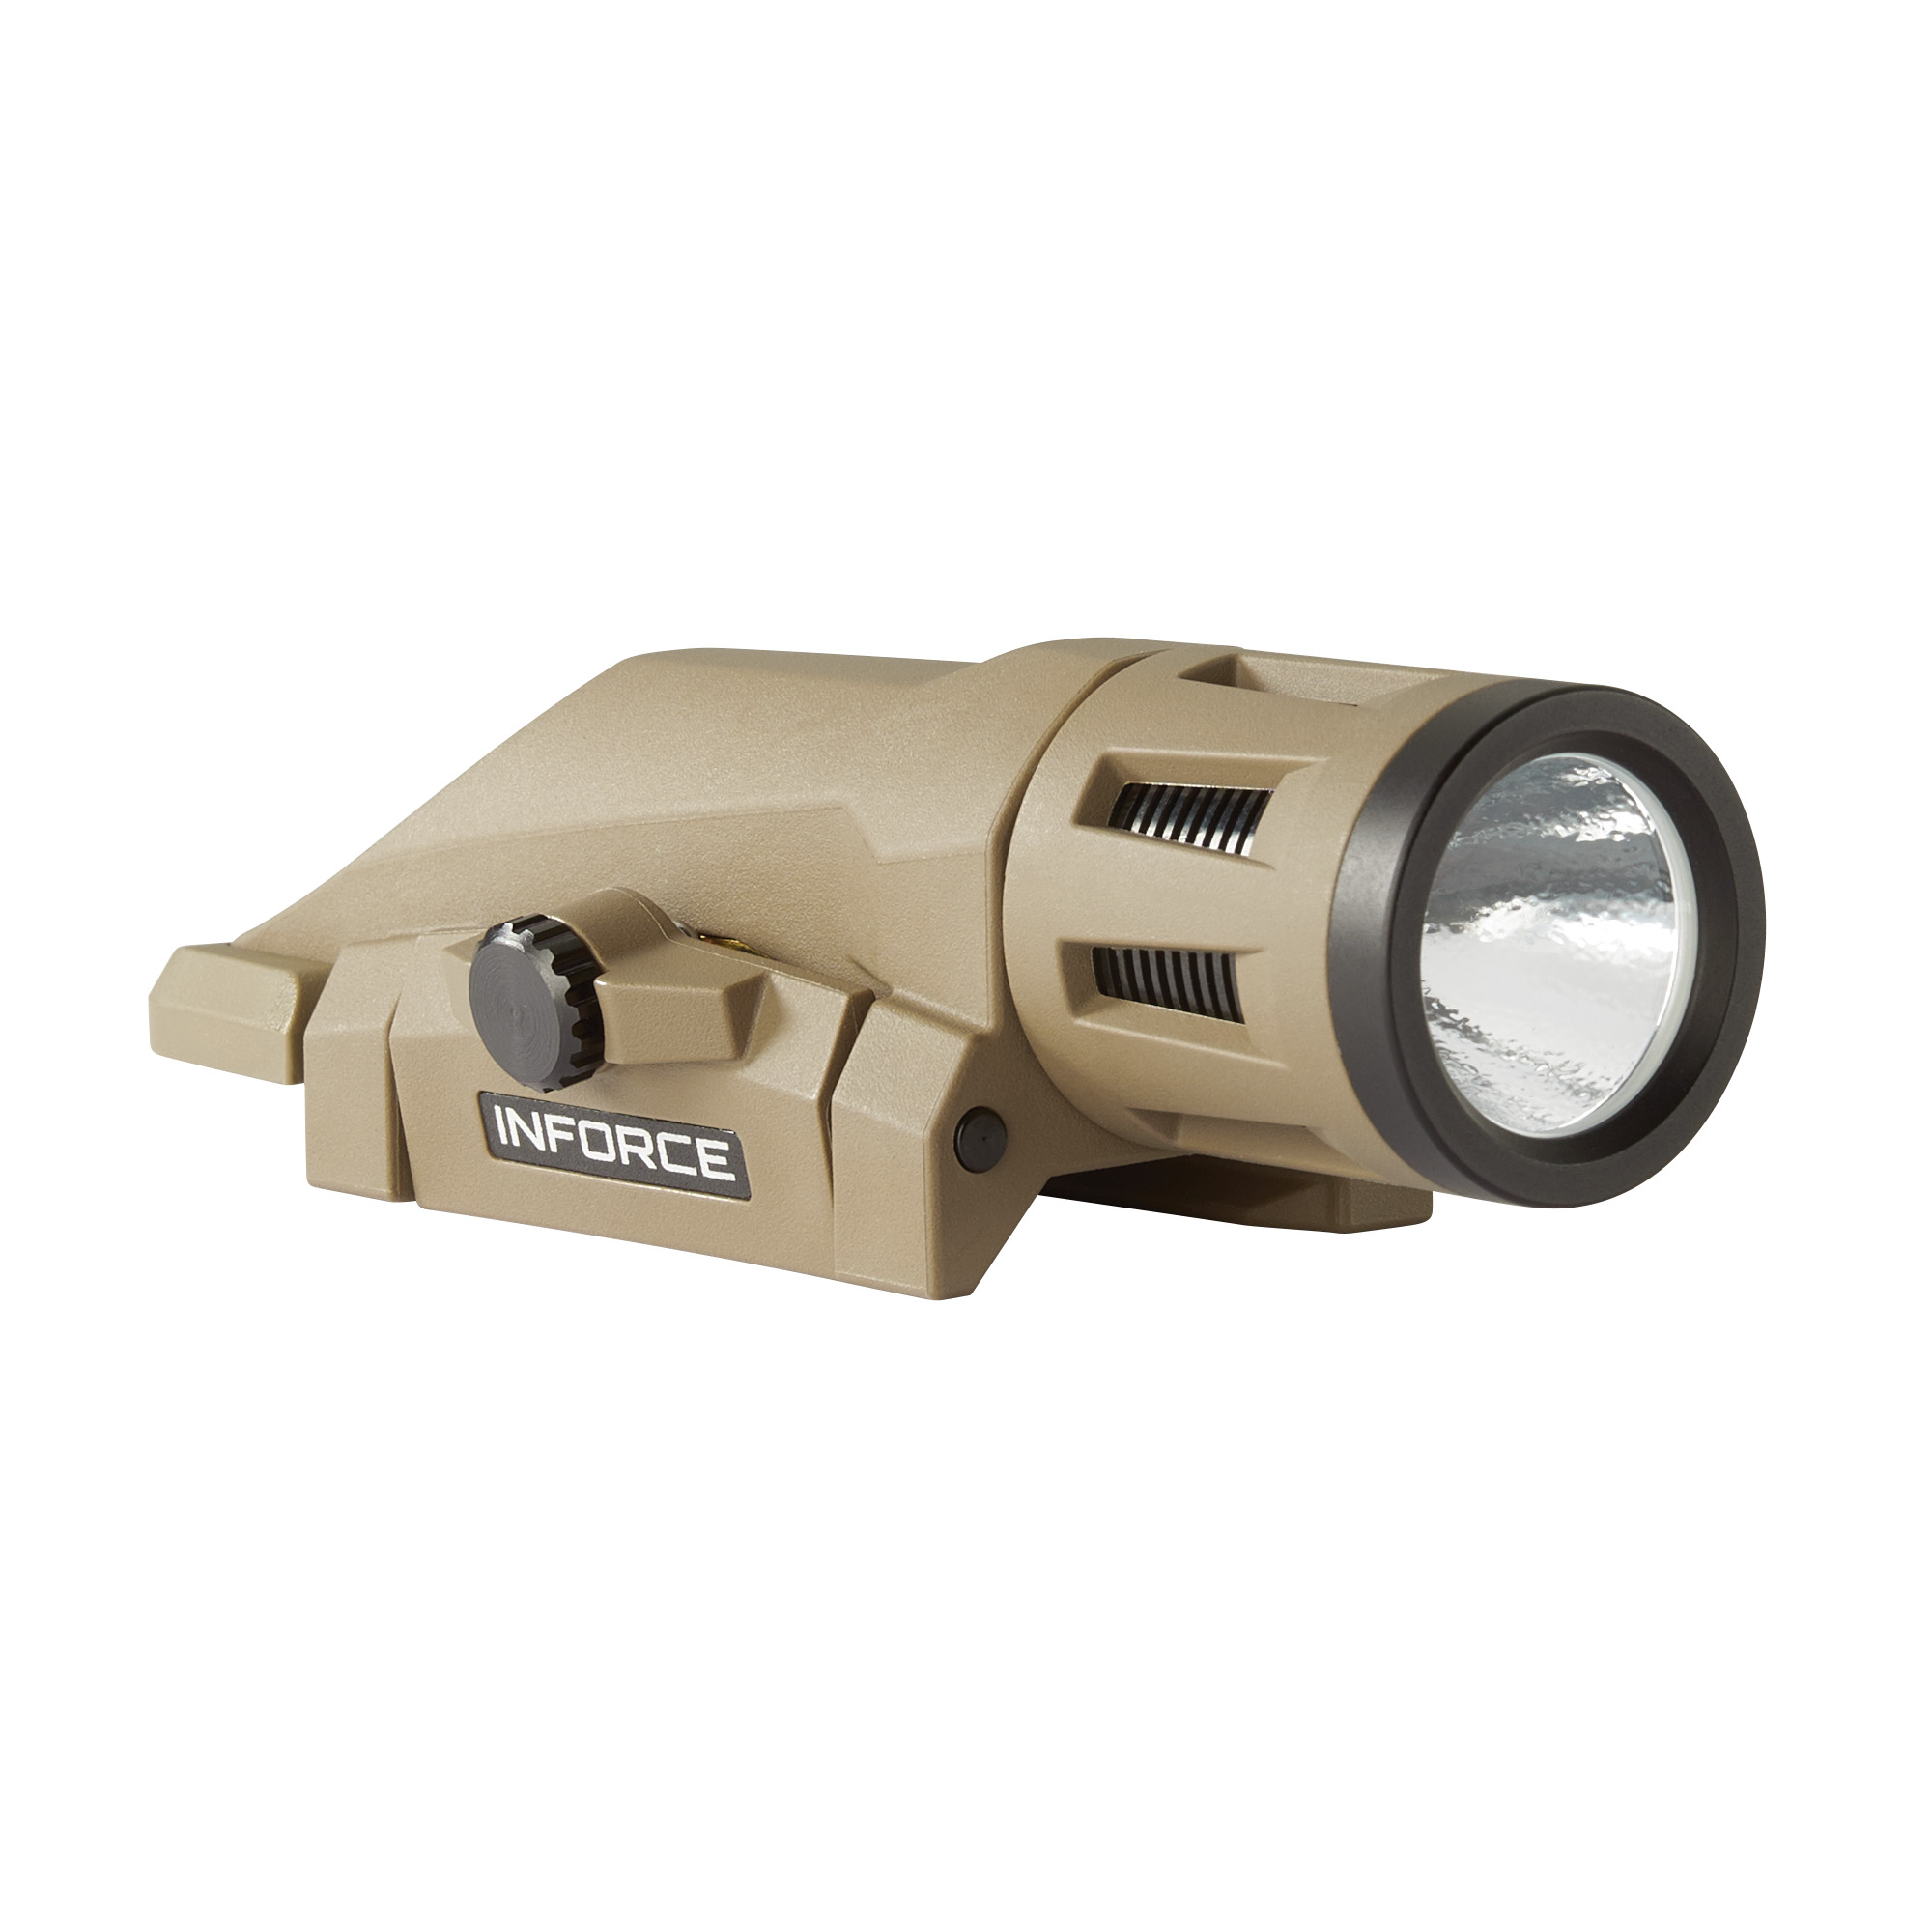 """With 400 lumens of vibrant white light"""" Inforce's WML Series is ultra-compact"""" durable"""" and offers three operating modes: constant"""" momentary and strobe. Extensively tested for performance"""" durability and reliability"""" its high efficiency emitters provide up to 1.5 hours of runtime. This 3-ounce weapon light's concentrated"""" high-intensity beam fills your field of view for close to mid-range target identification. The strobe function is easily disabled and the easy-to-operate logout system ensures the light isn't turned on until you're ready. Our all-inclusive rail clamping design integrates seamlessly with your weapon"""" providing simple"""" fast mounting with no need for additional tools."""